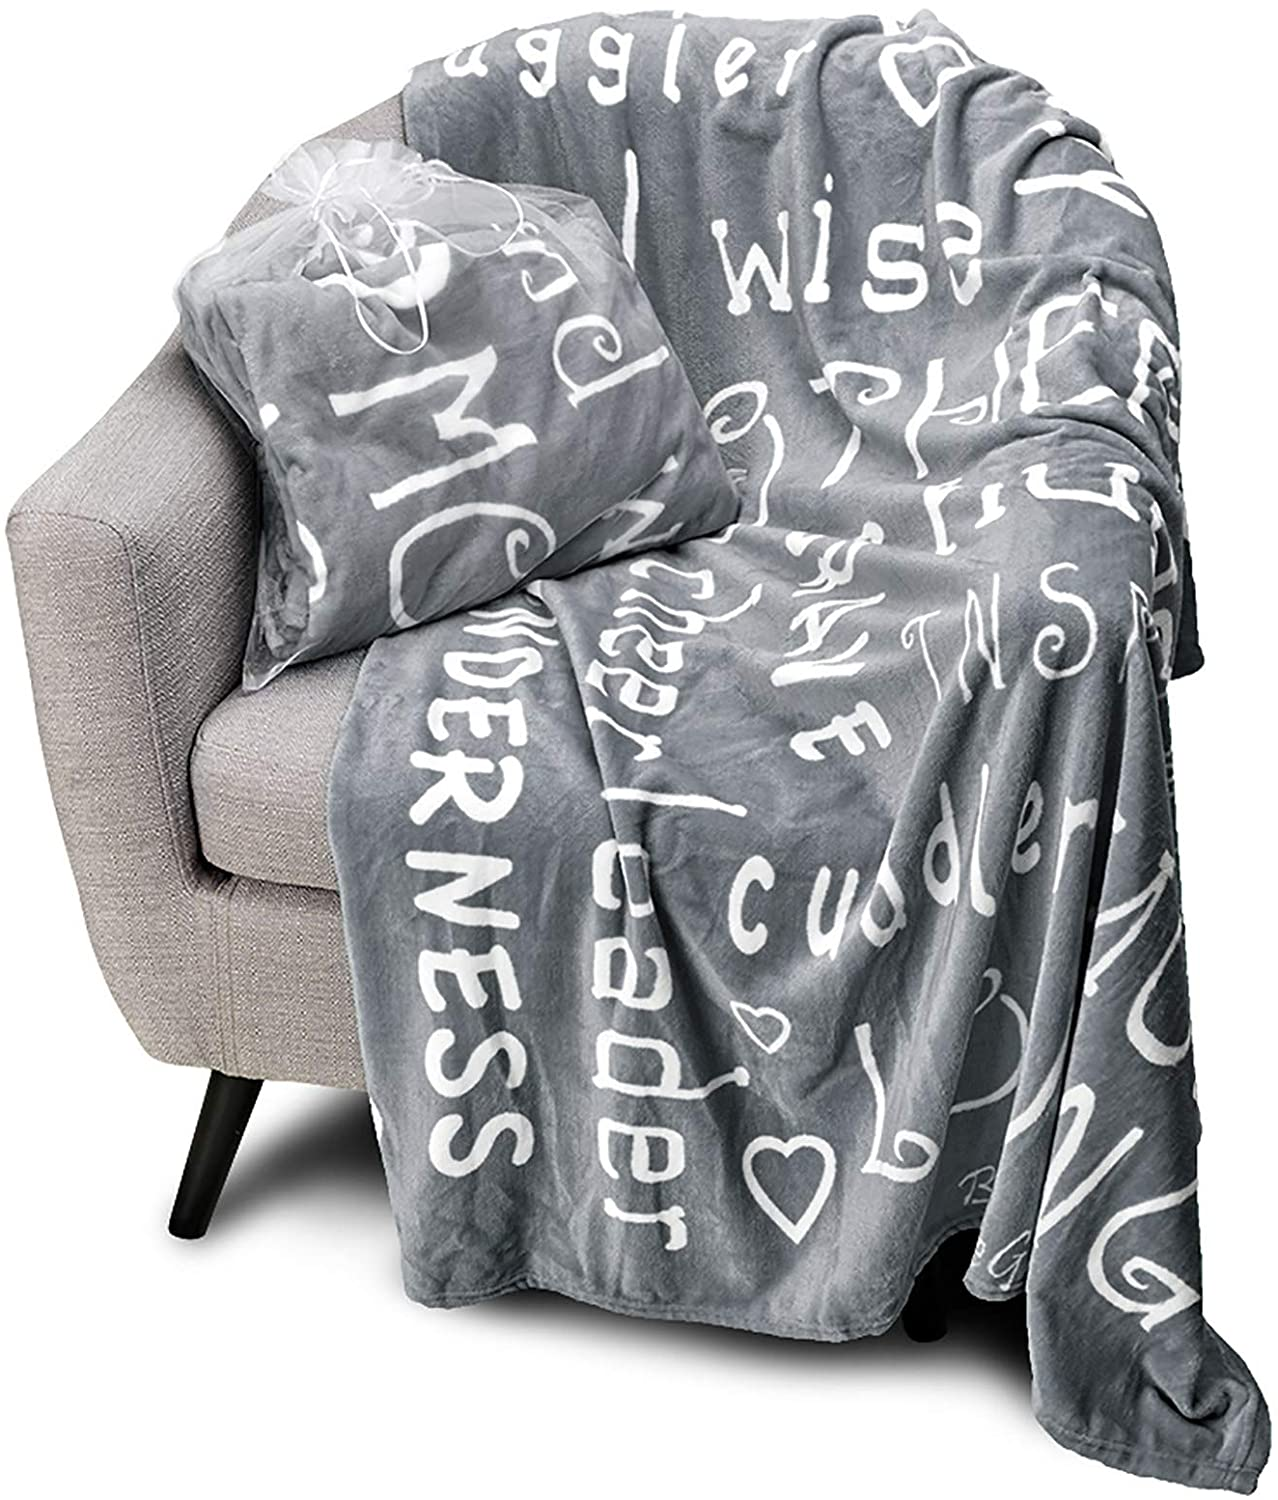 gifts-for-mom-from-daughter-throw-blanket